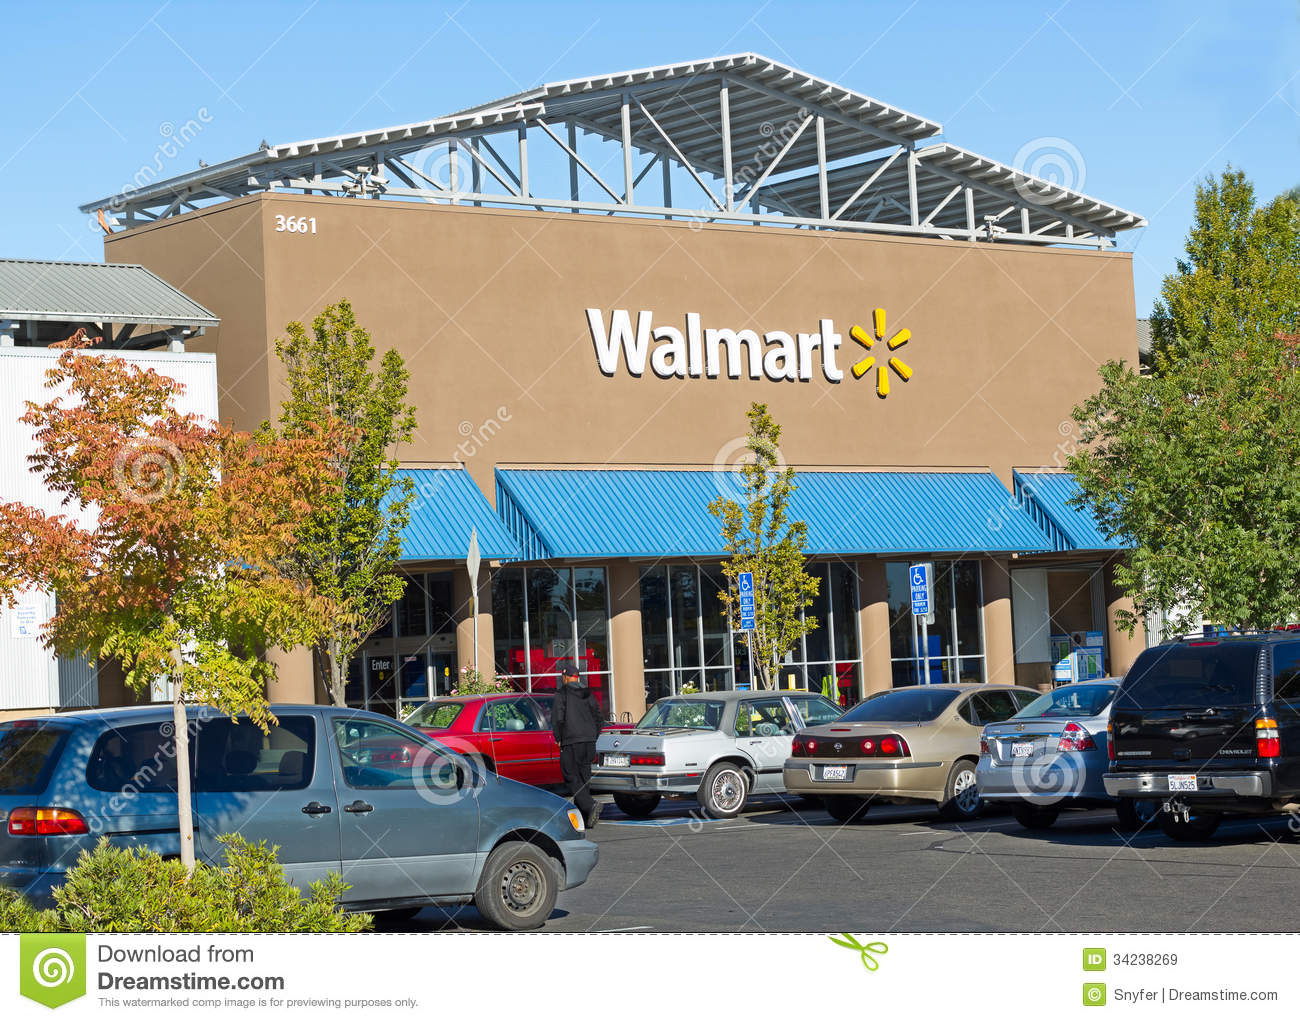 See All Services Walmart Credit Card Money Transfers Check Printing Walmart MoneyCard Walmart Protection Plan Trade-In Program Tech Support Registries and Lists Health and Wellness Photo Services Box Subscription Programs.